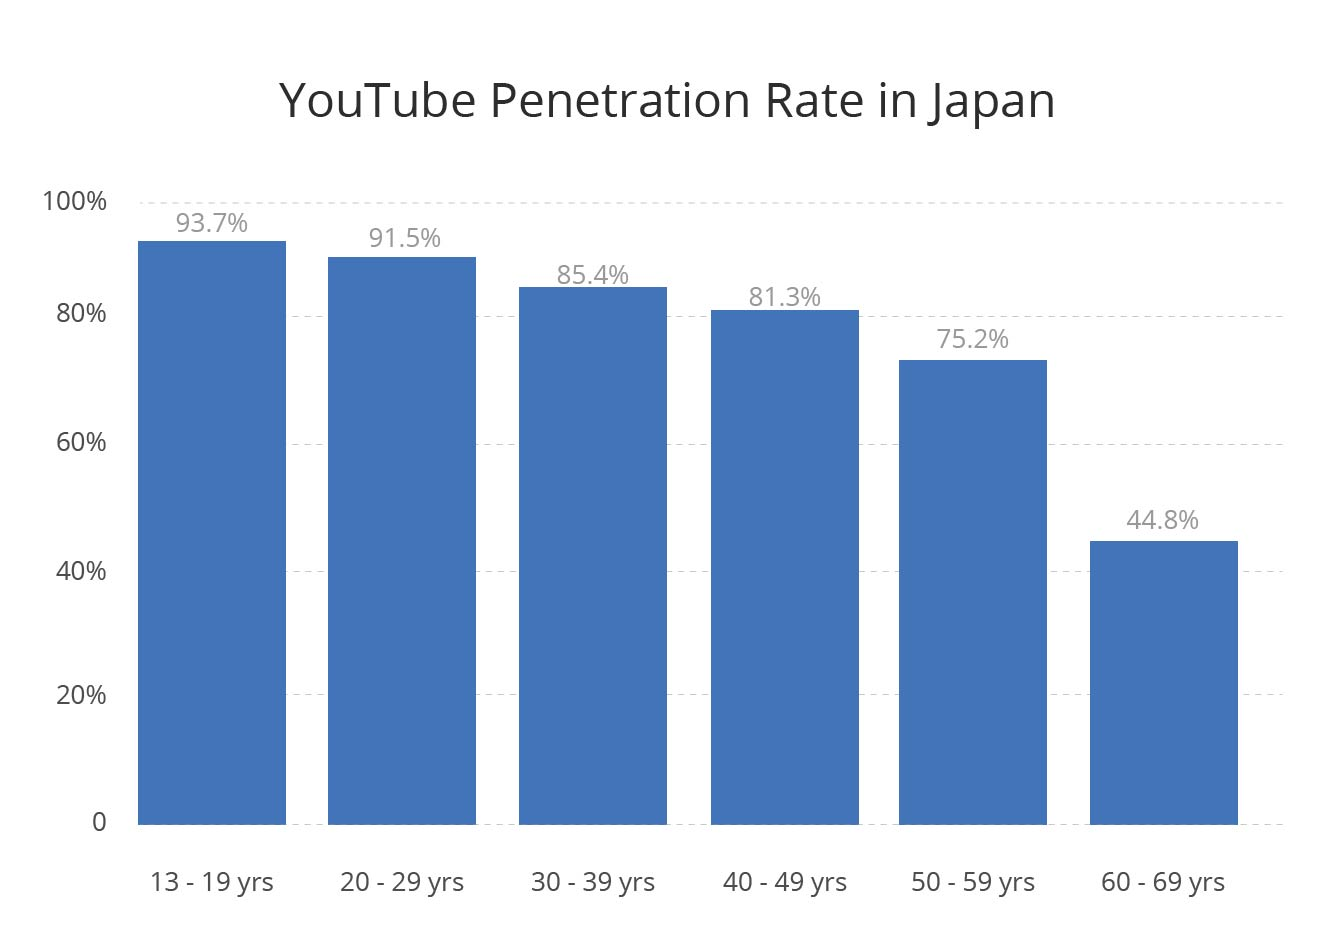 YouTube penetration rate by age group in Japan - January 2020